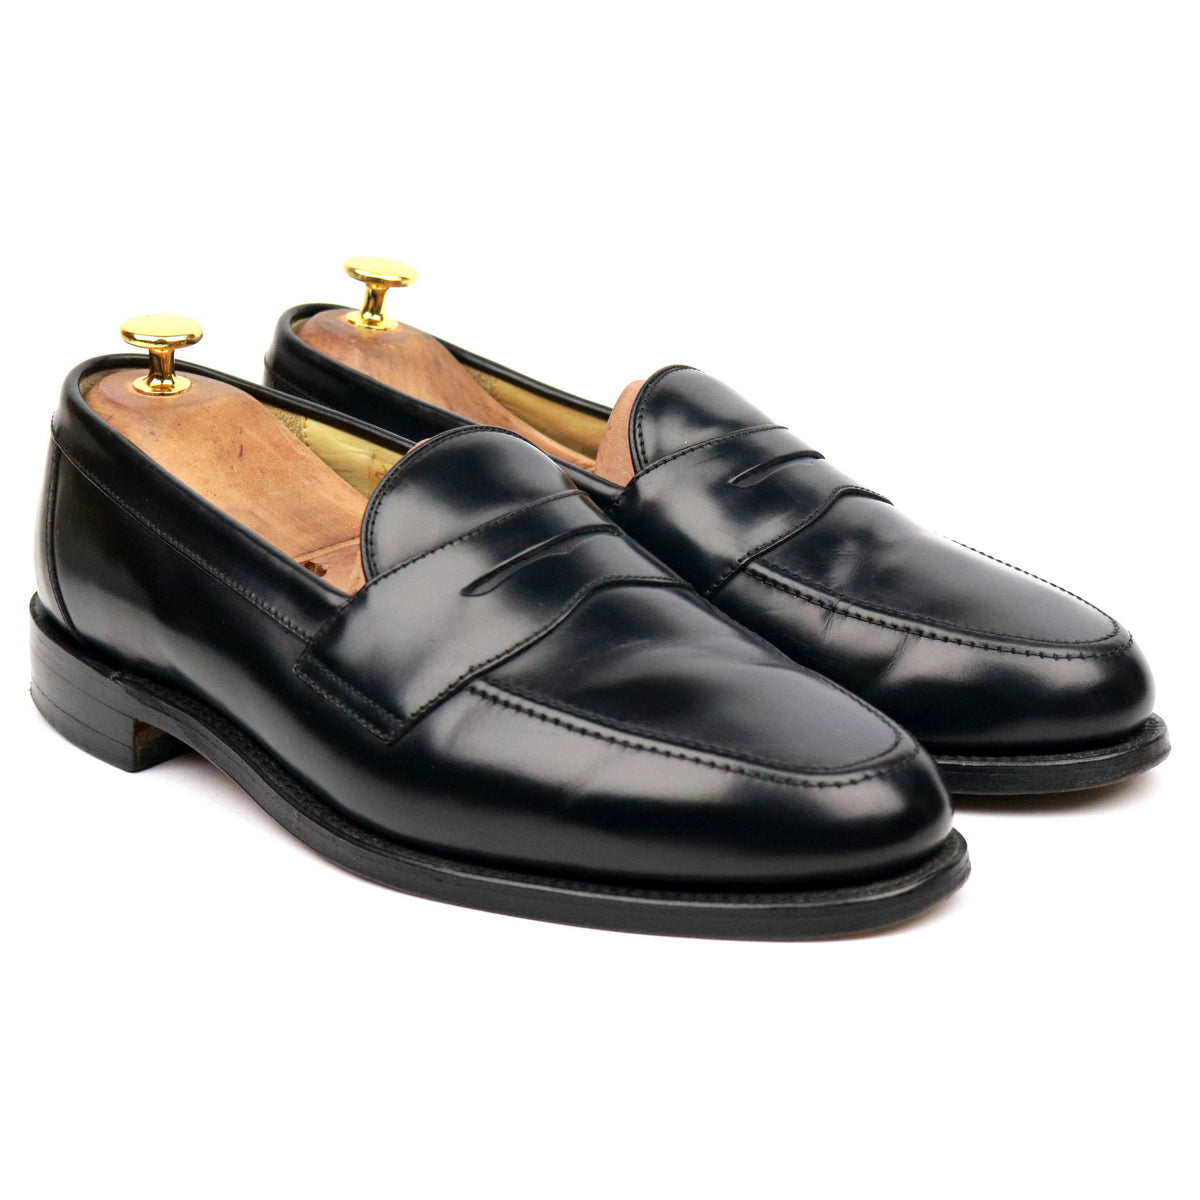 Loake 'Eton' Black Leather Loafers UK 9.5 F